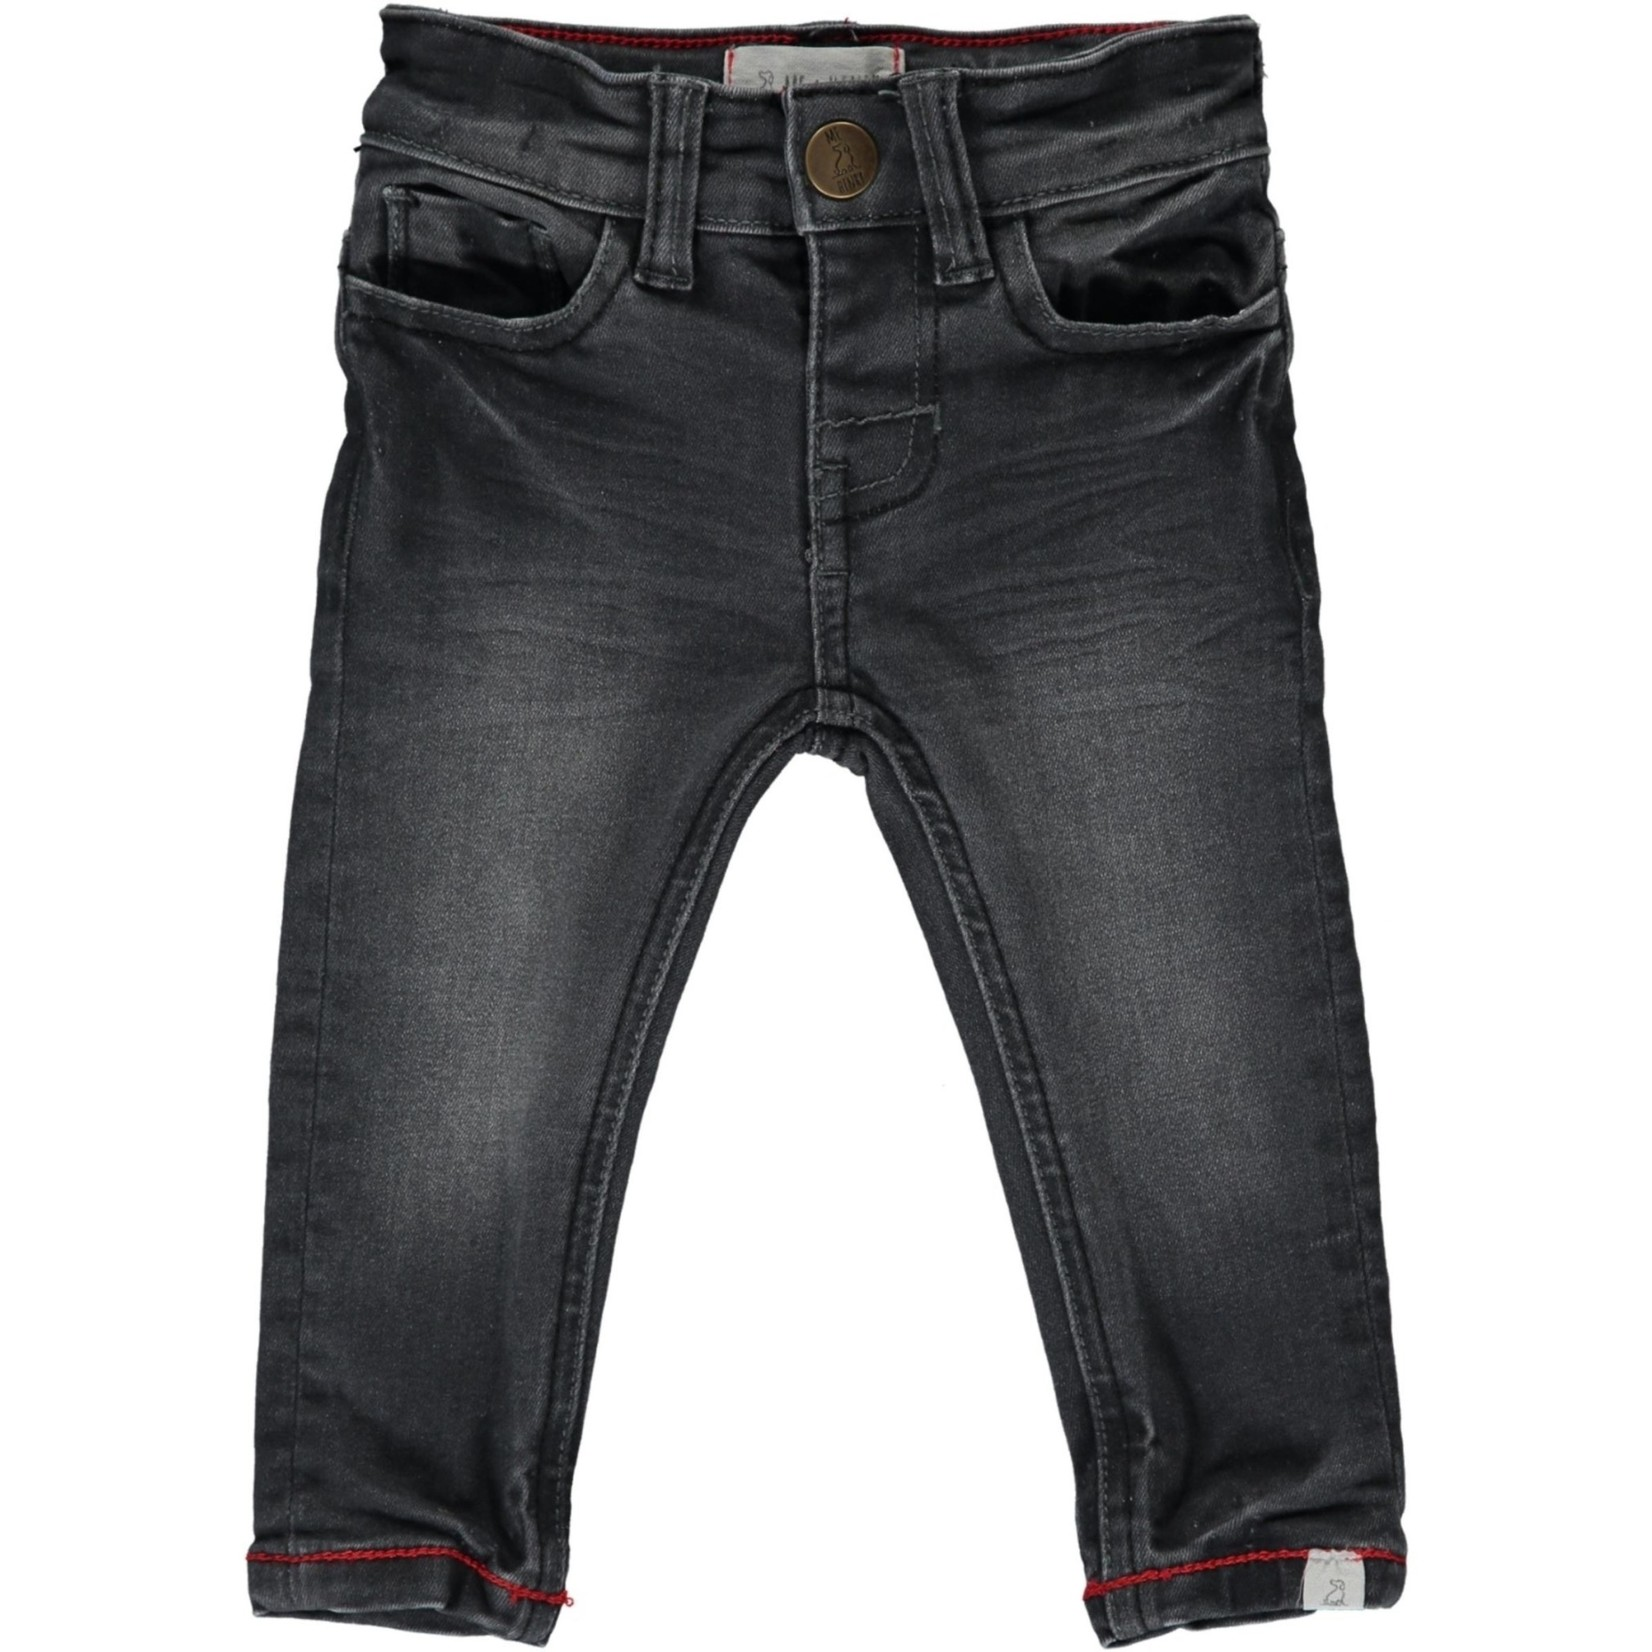 Me + Henry Charcoal Jeans Baby Slim Fit Denim